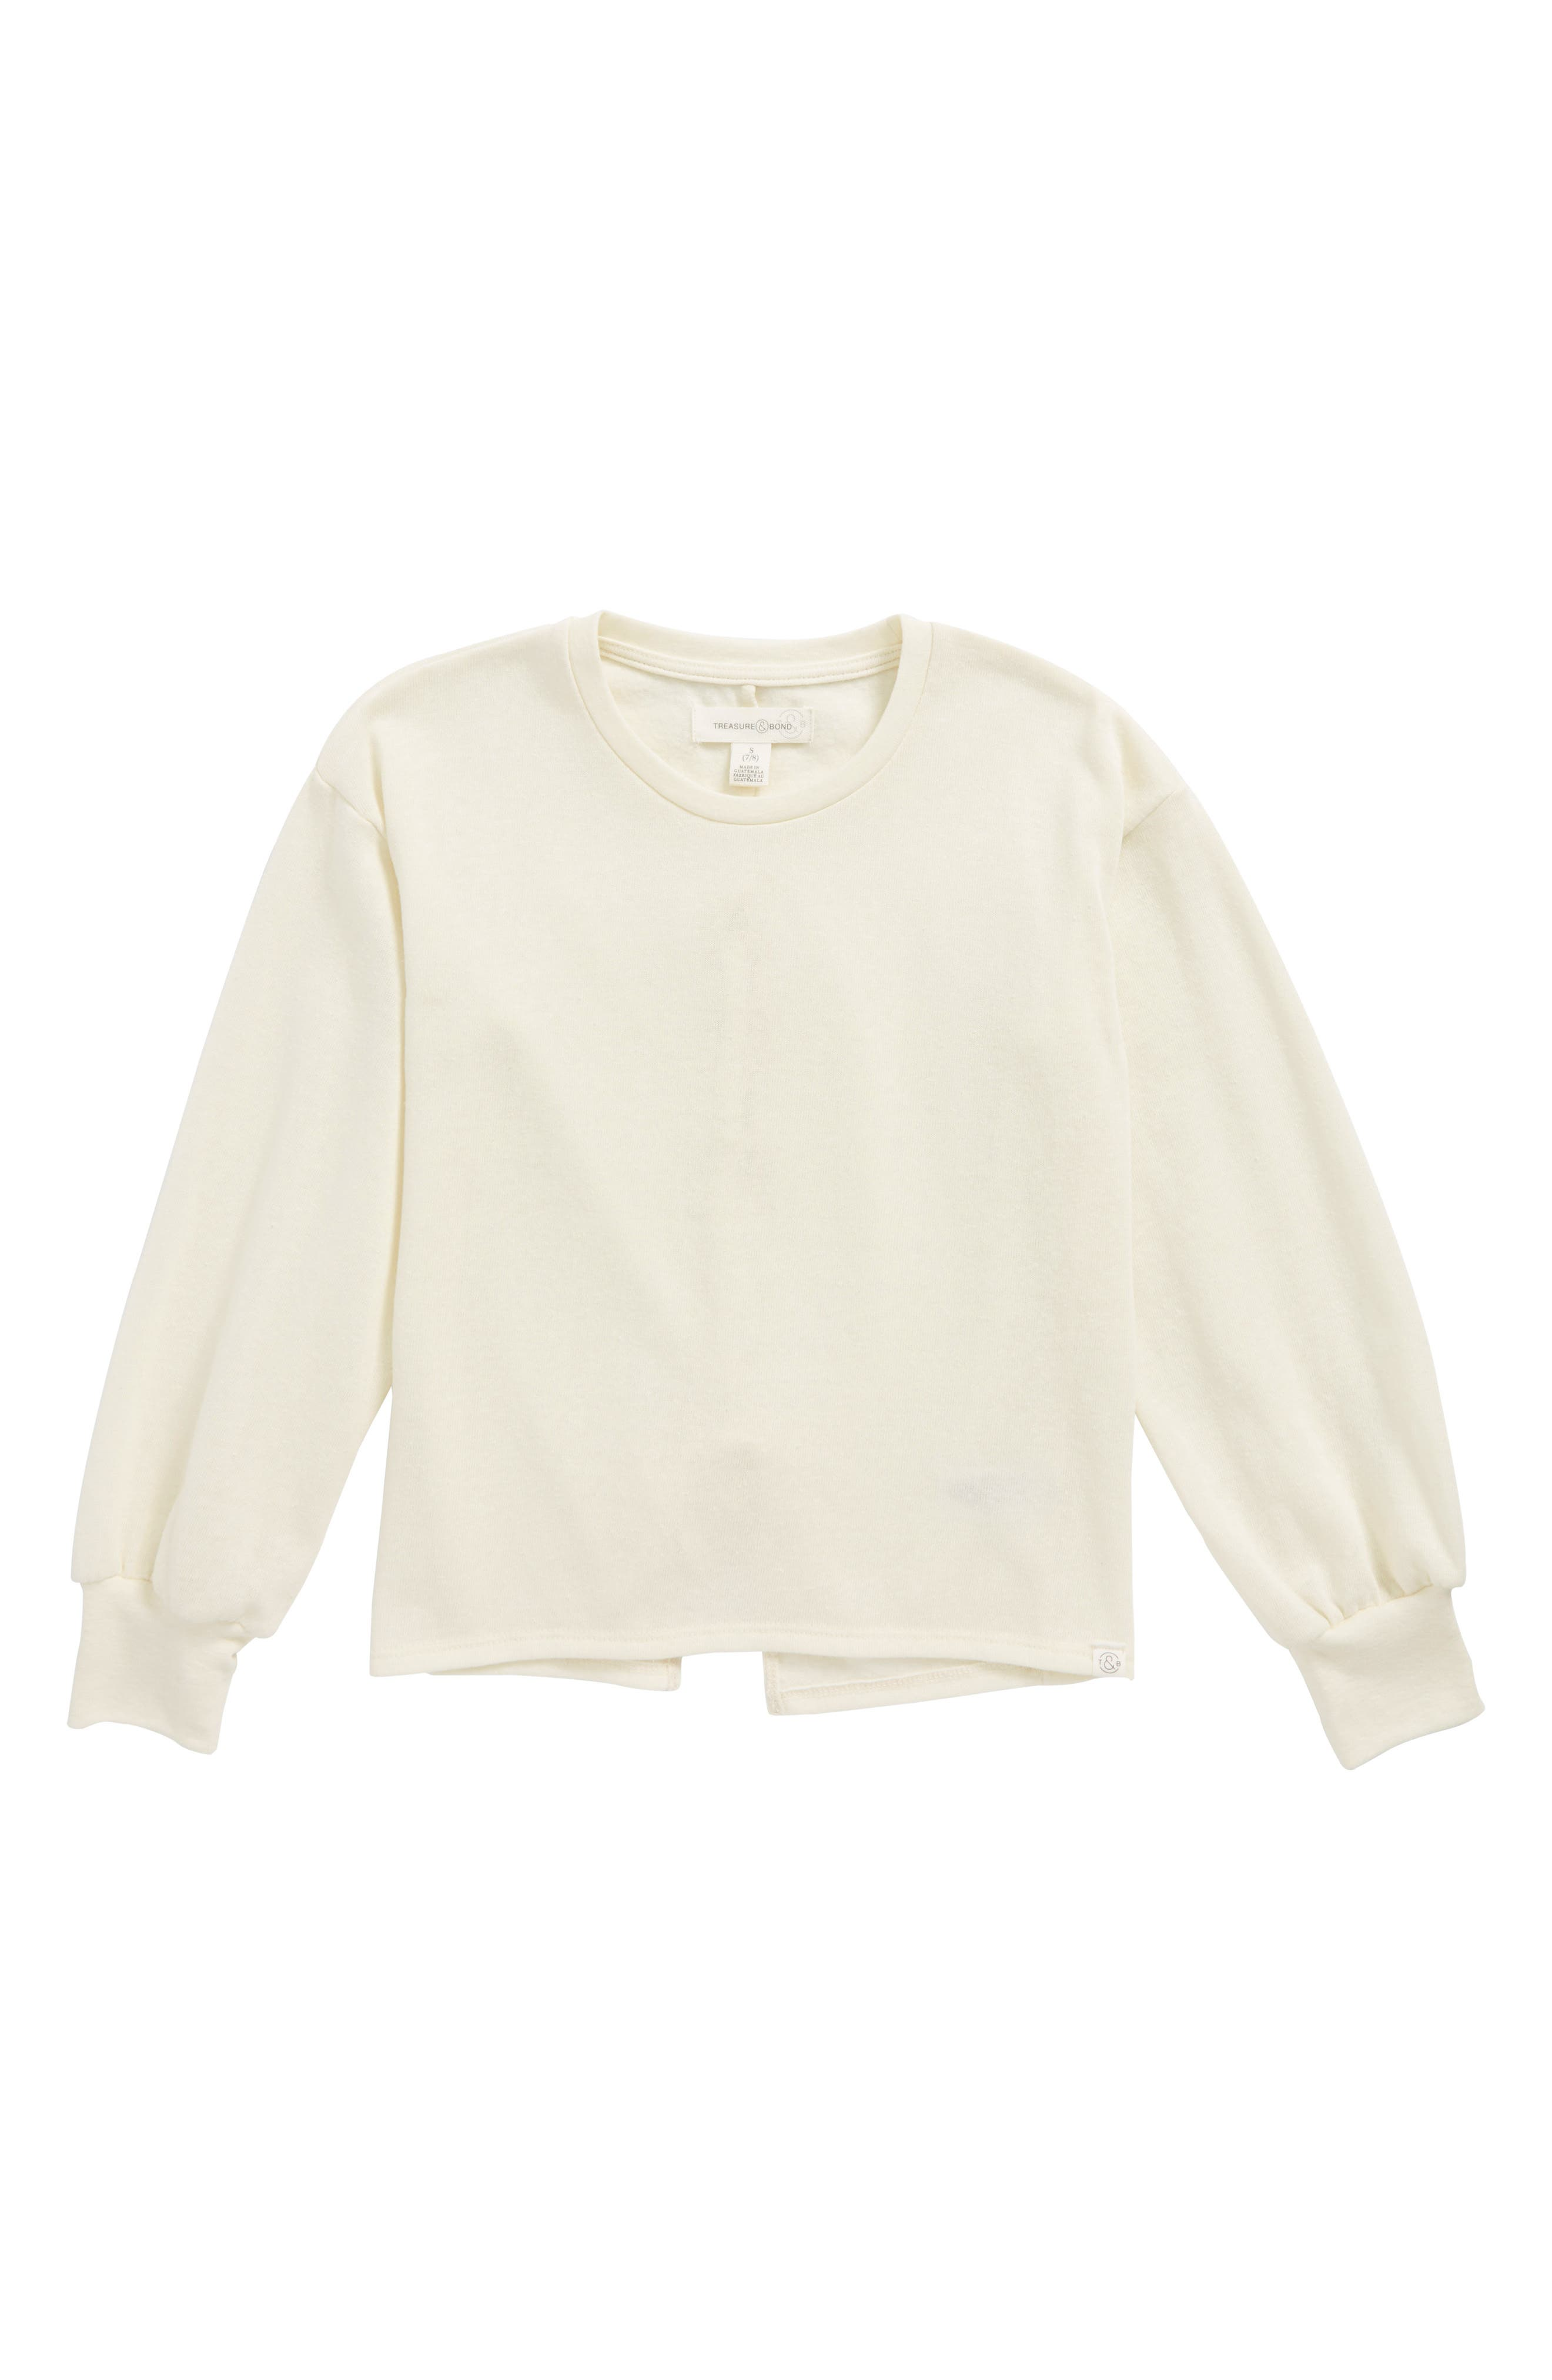 Lace-Up Back Fleece Pullover,                             Main thumbnail 1, color,                             Ivory Egret